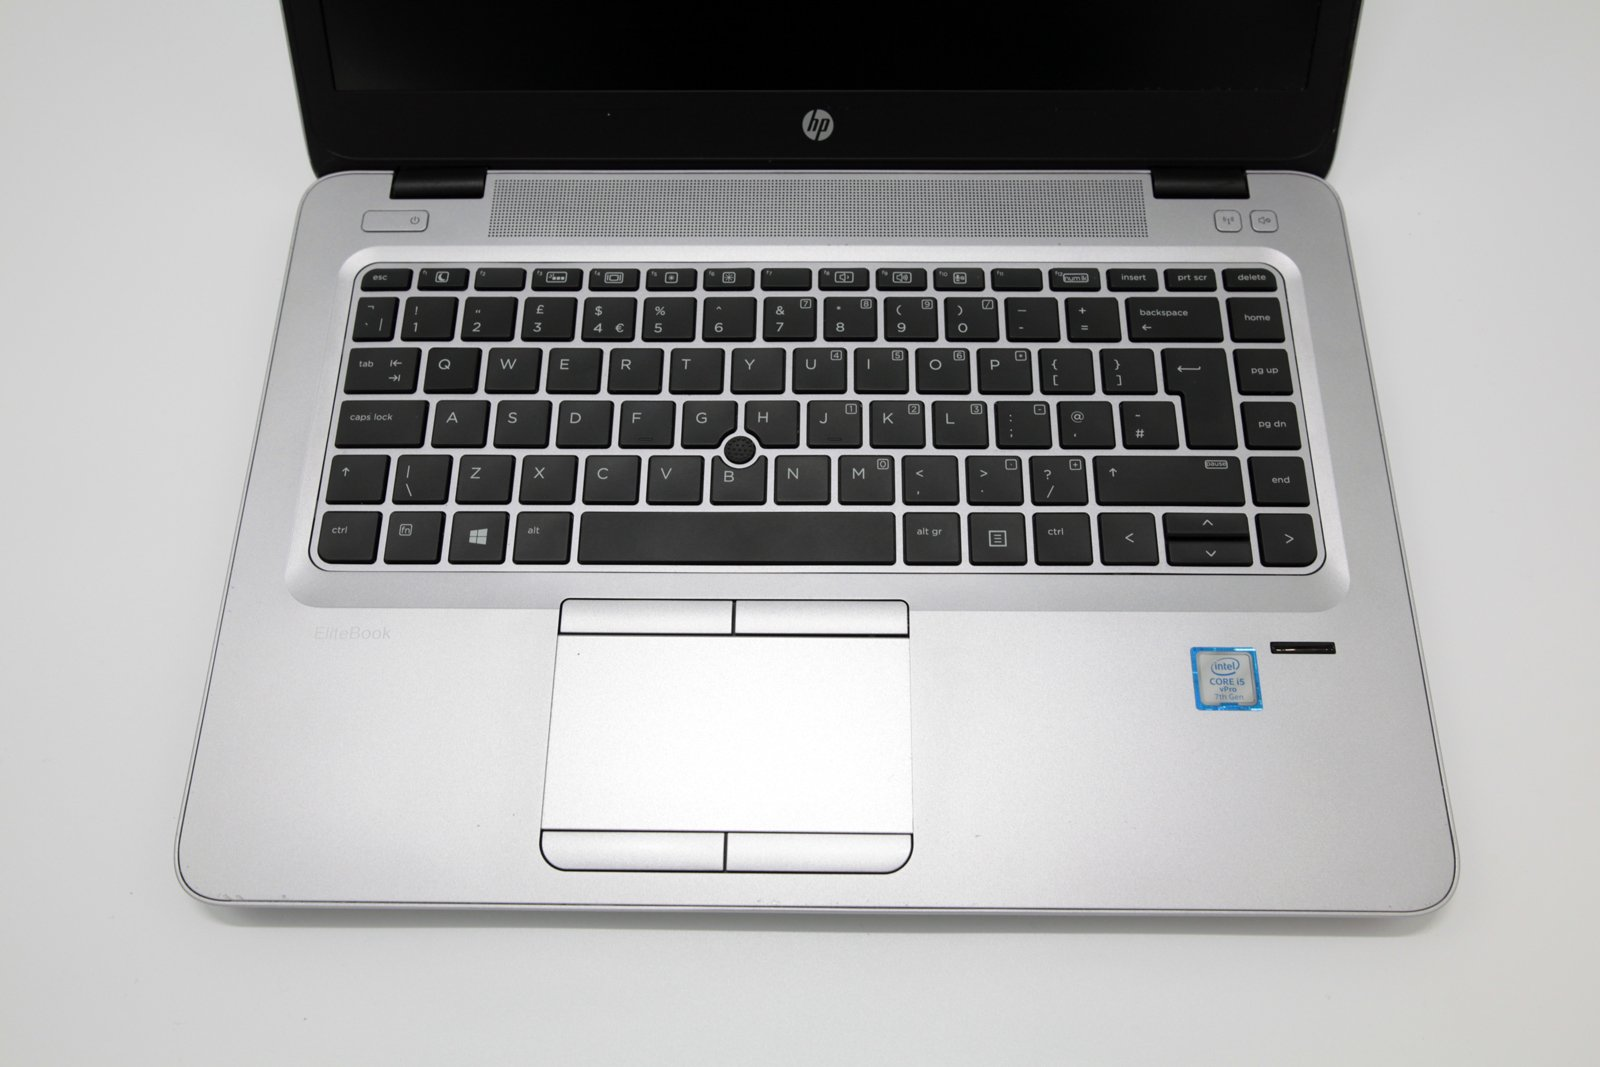 HP EliteBook 840 G4 FHD Laptop: 256GB 7th Gen i5, 8GB RAM Warranty VAT (Grade 3) - CruiseTech